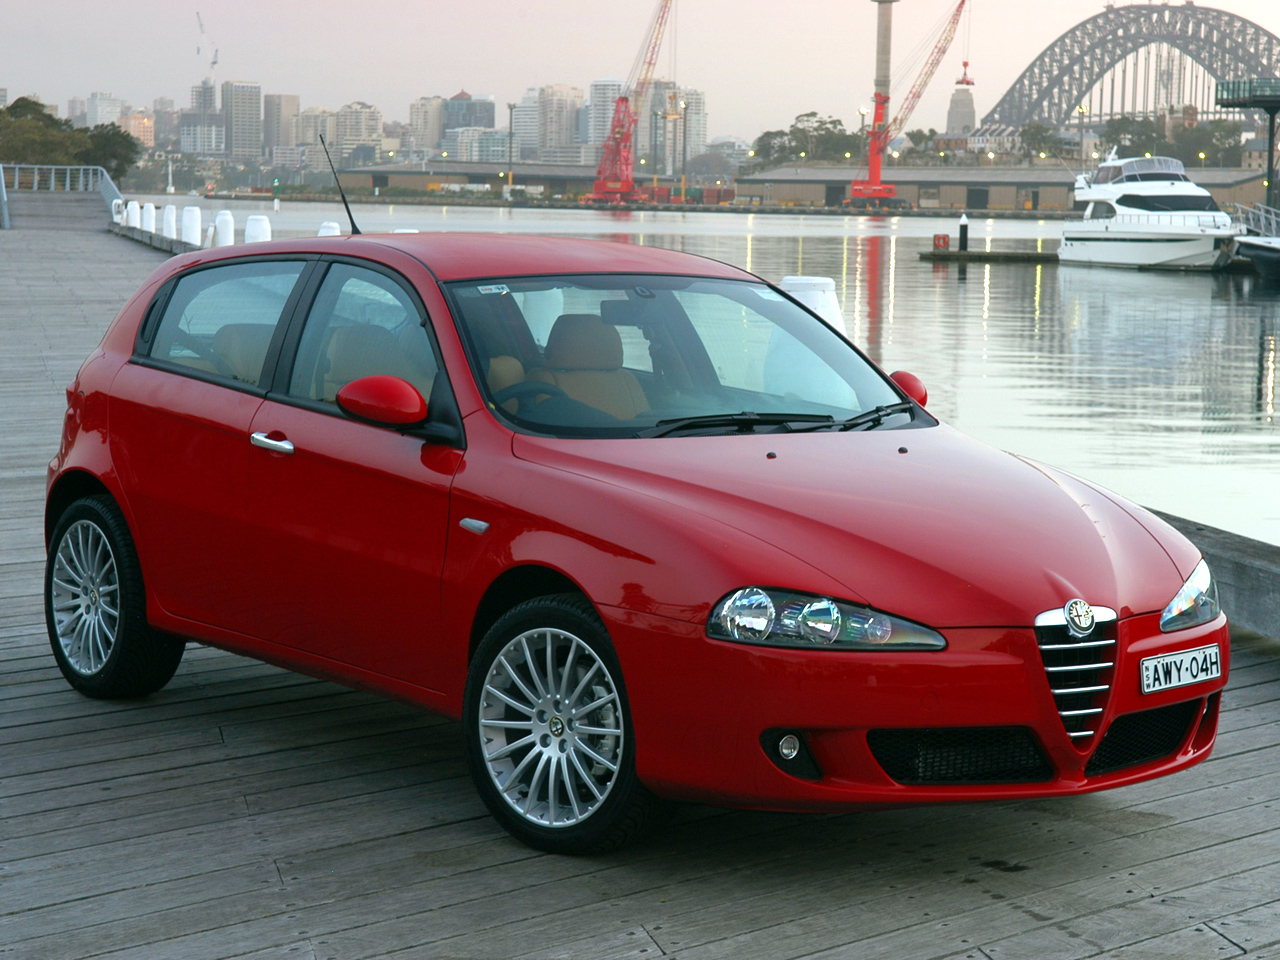 2019 Alfa Romeo 147 5door photo - 6